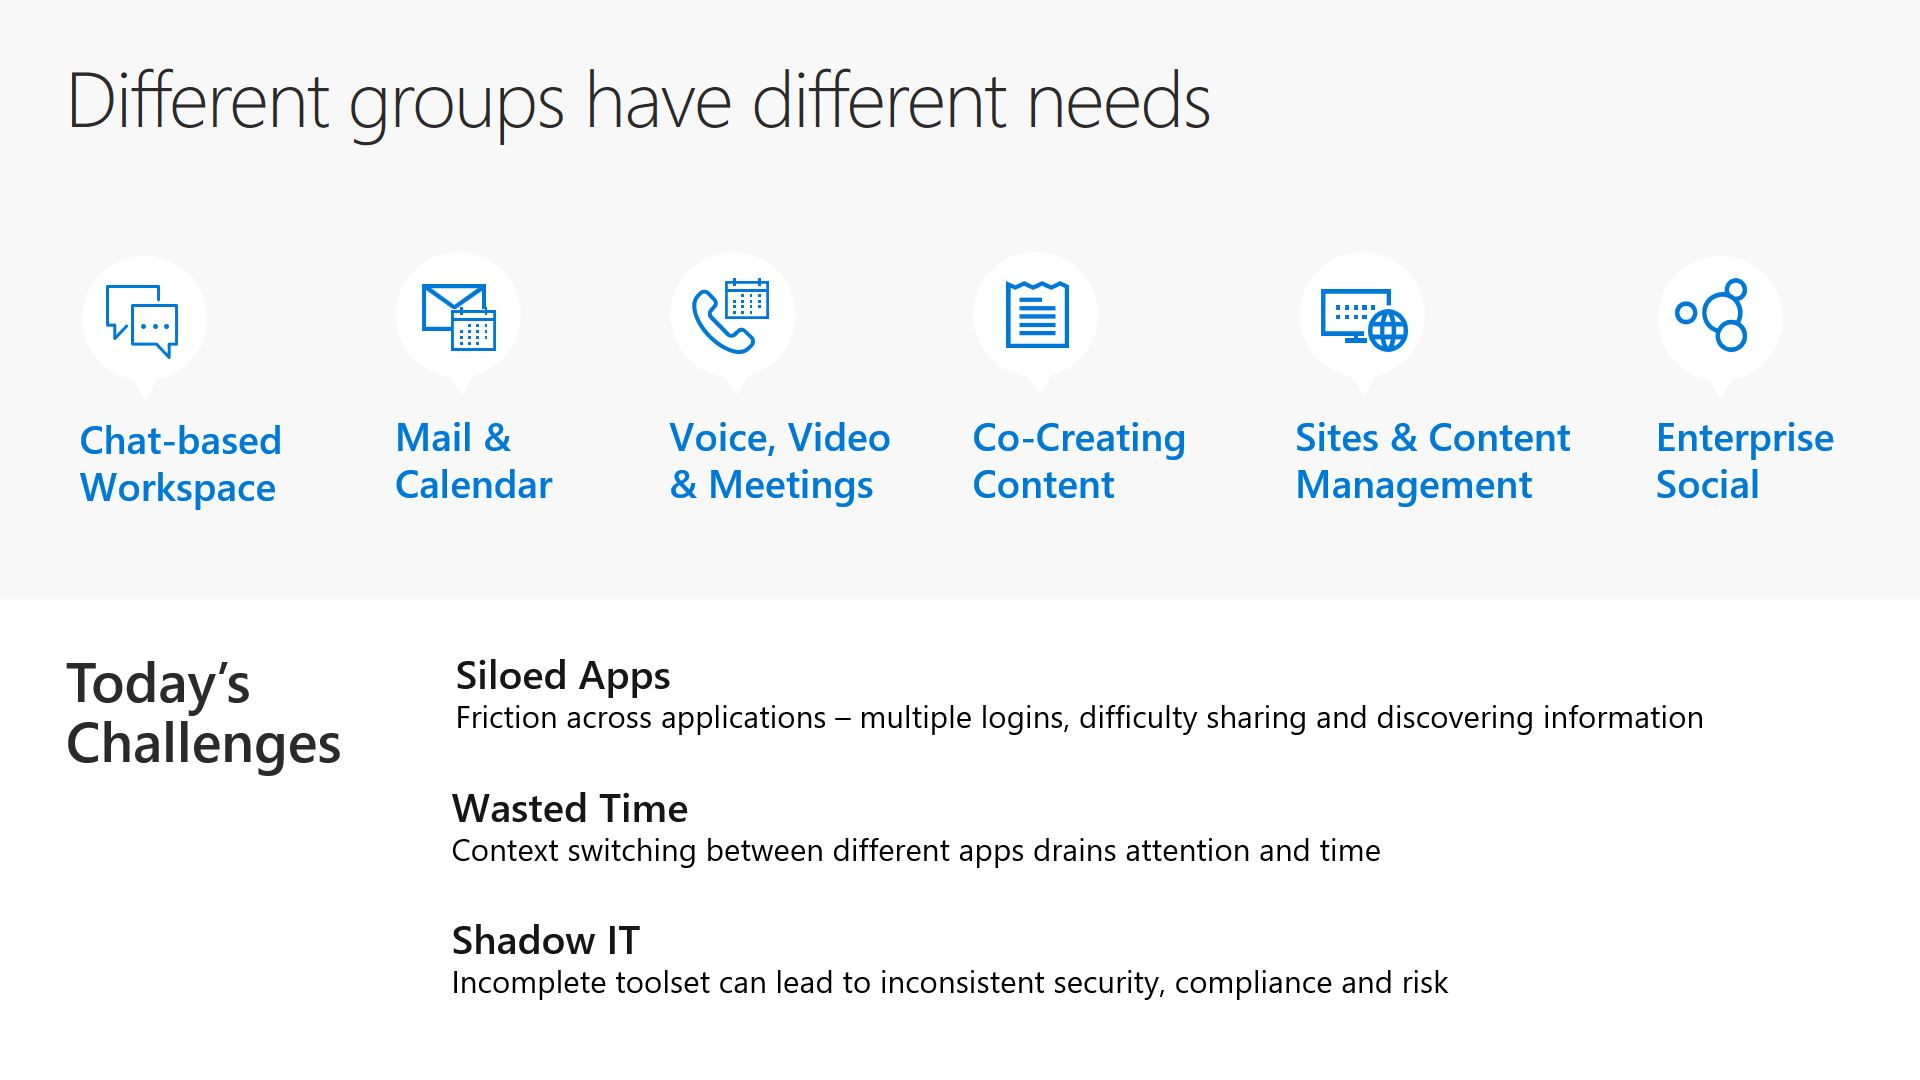 What are Office 365 Groups, different groups have different needs